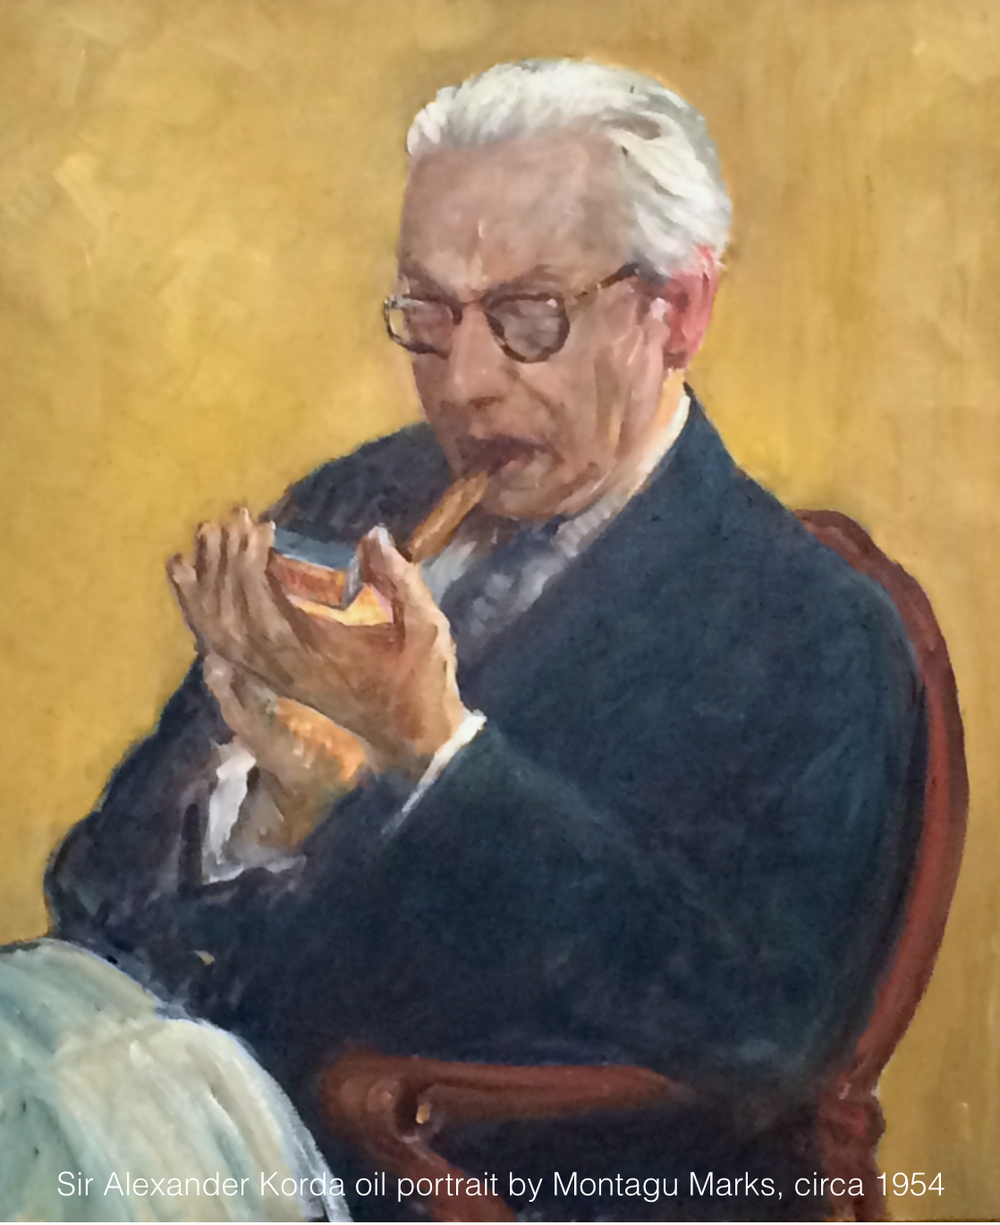 Alexander Korda portrait by Montagu Marks, circa 1954. Copyright Montagu Marks' Estate All Rights Reserved. private collection.